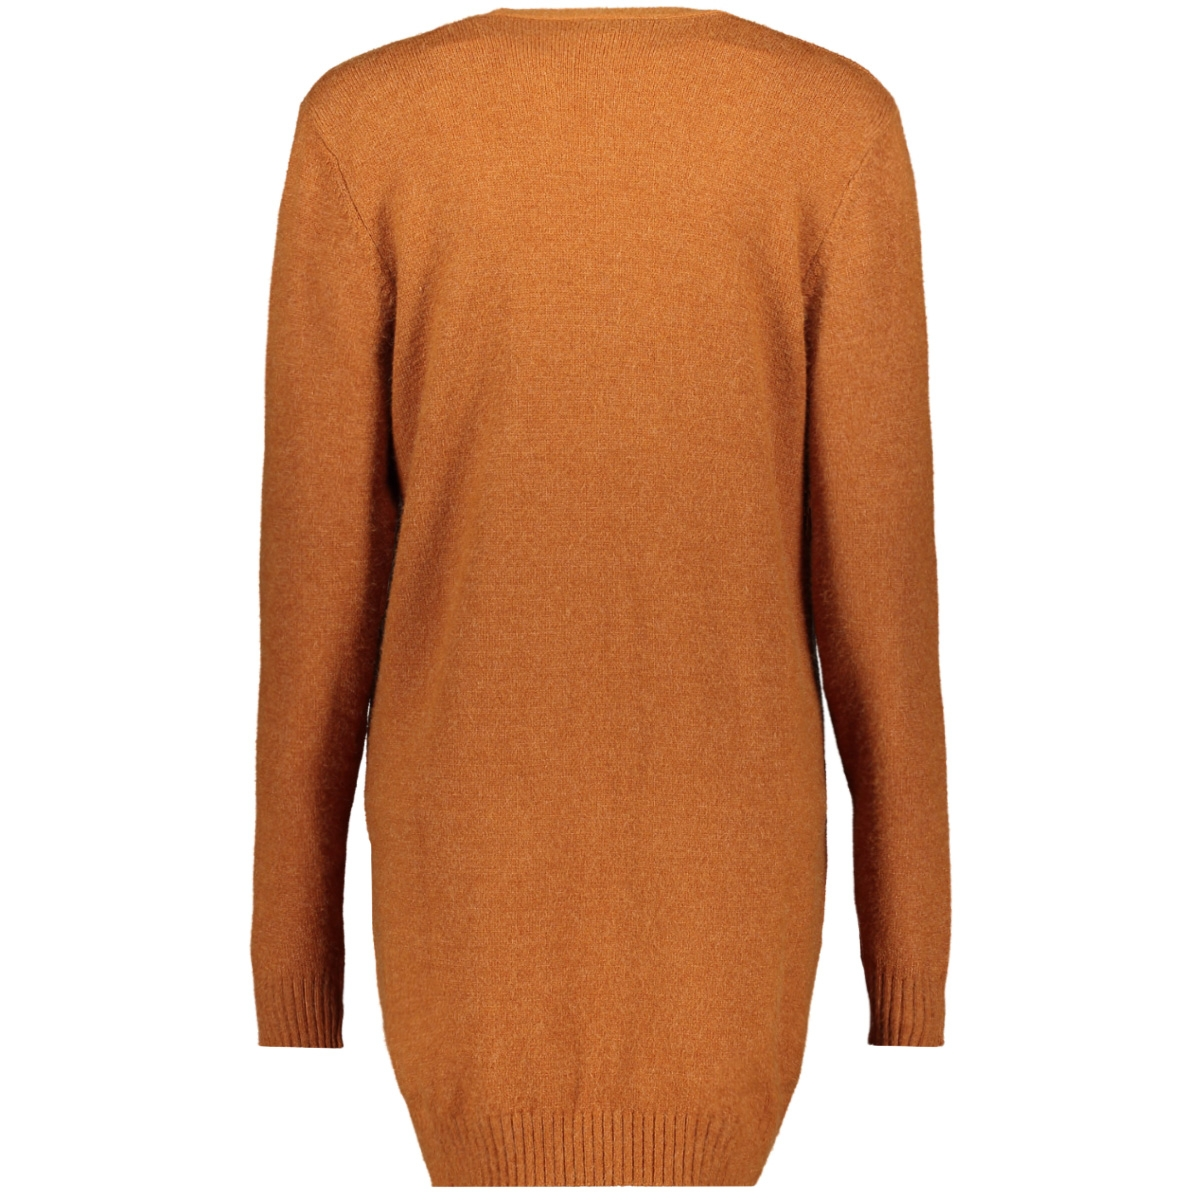 viril l/s open knit cardigan-fav 14044095 vila vest caramel cafe/melange